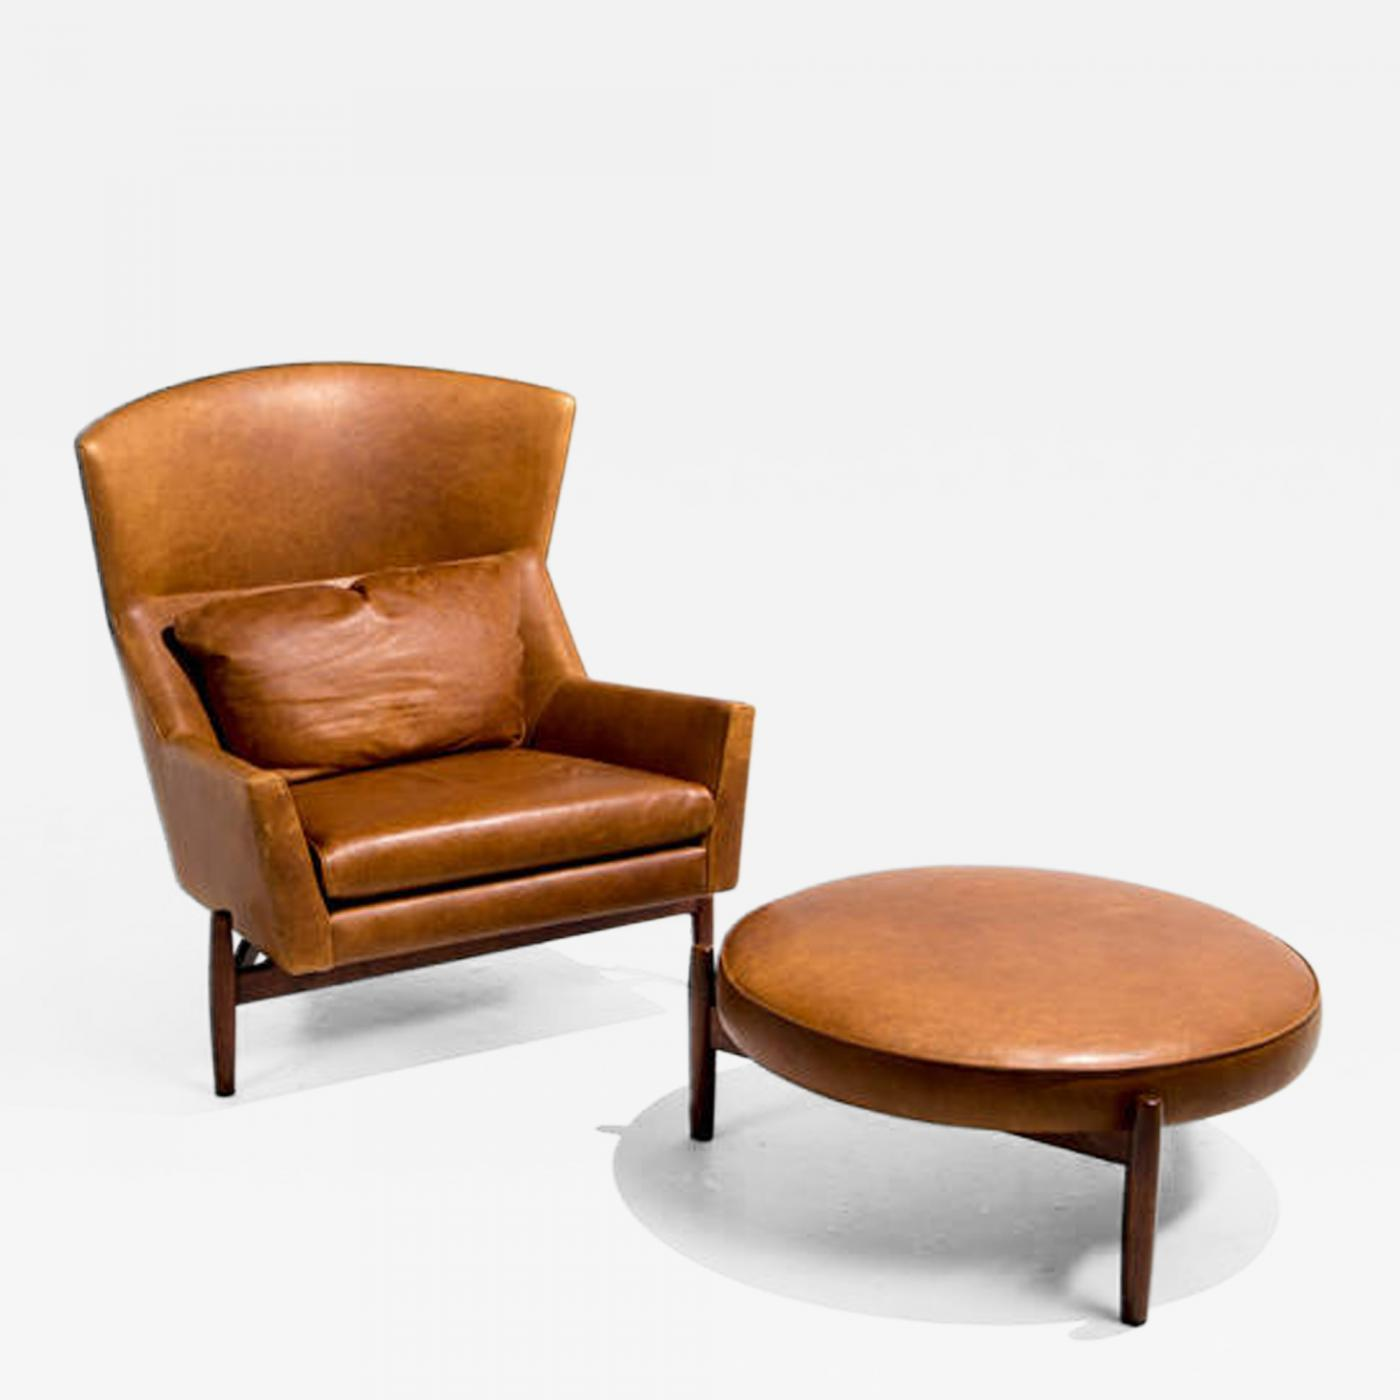 Charmant A Rare Example Of A Leather Jens Risom Chair And Ottoman, C. 1960. Limited  Numbers Of This Chair And Ottoman Exist. Matched Pairs Are More Scarce.